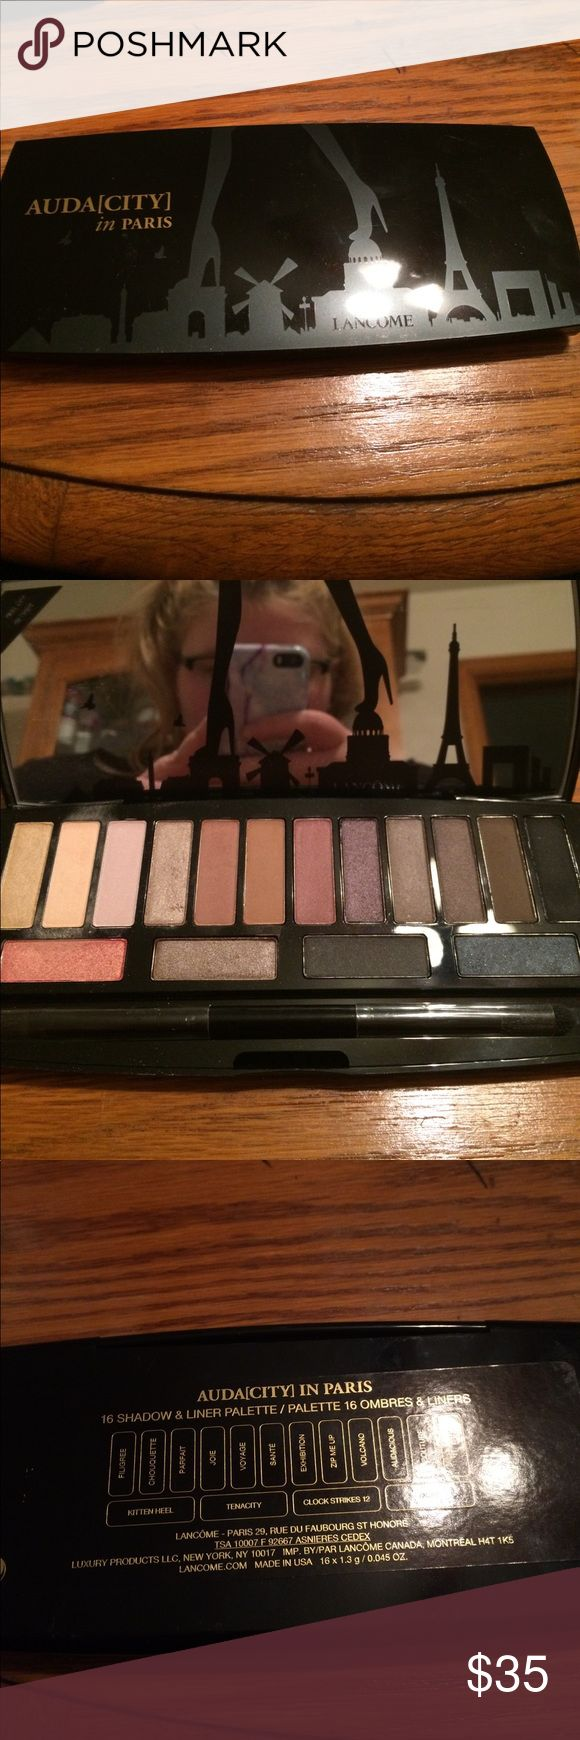 Lancôme Auda(city) in Paris Eyeshadow Palette Some colors have been swatched but other than that pretty much brand new. Lancome Makeup Eyeshadow